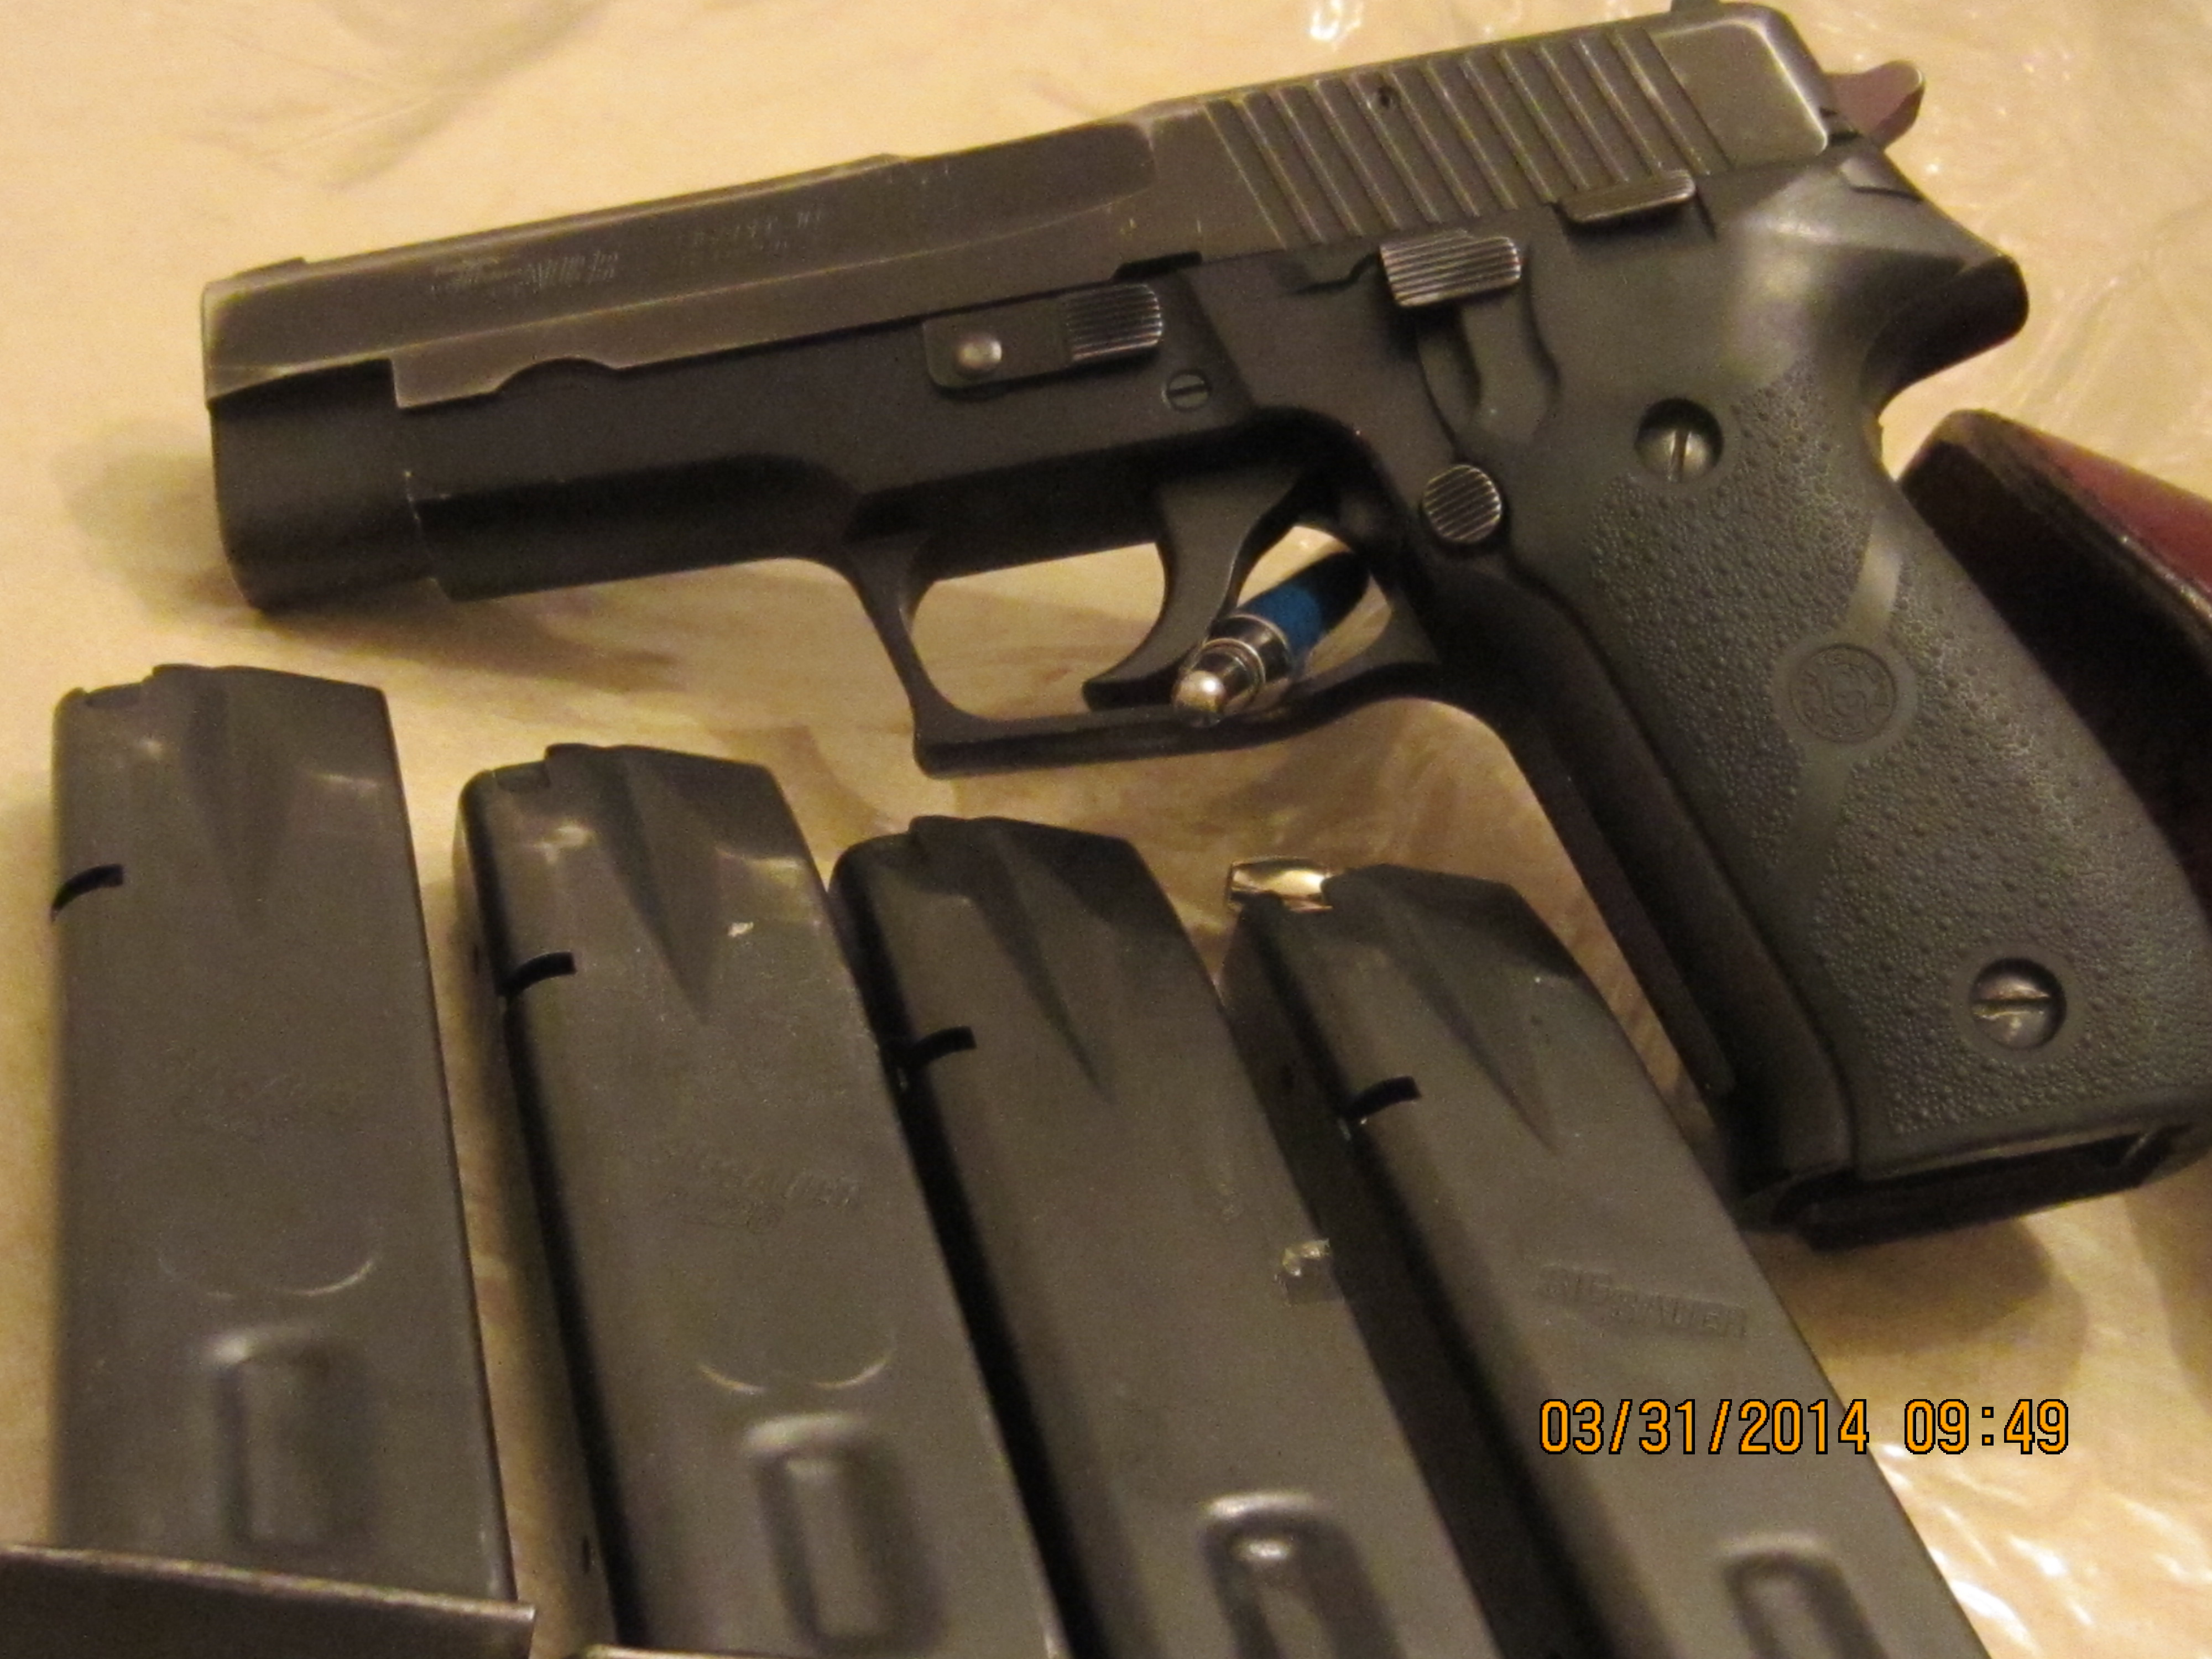 Do active shooter incident like El Paso make you reconsider your CCW choices?-img_0544-1-.jpg